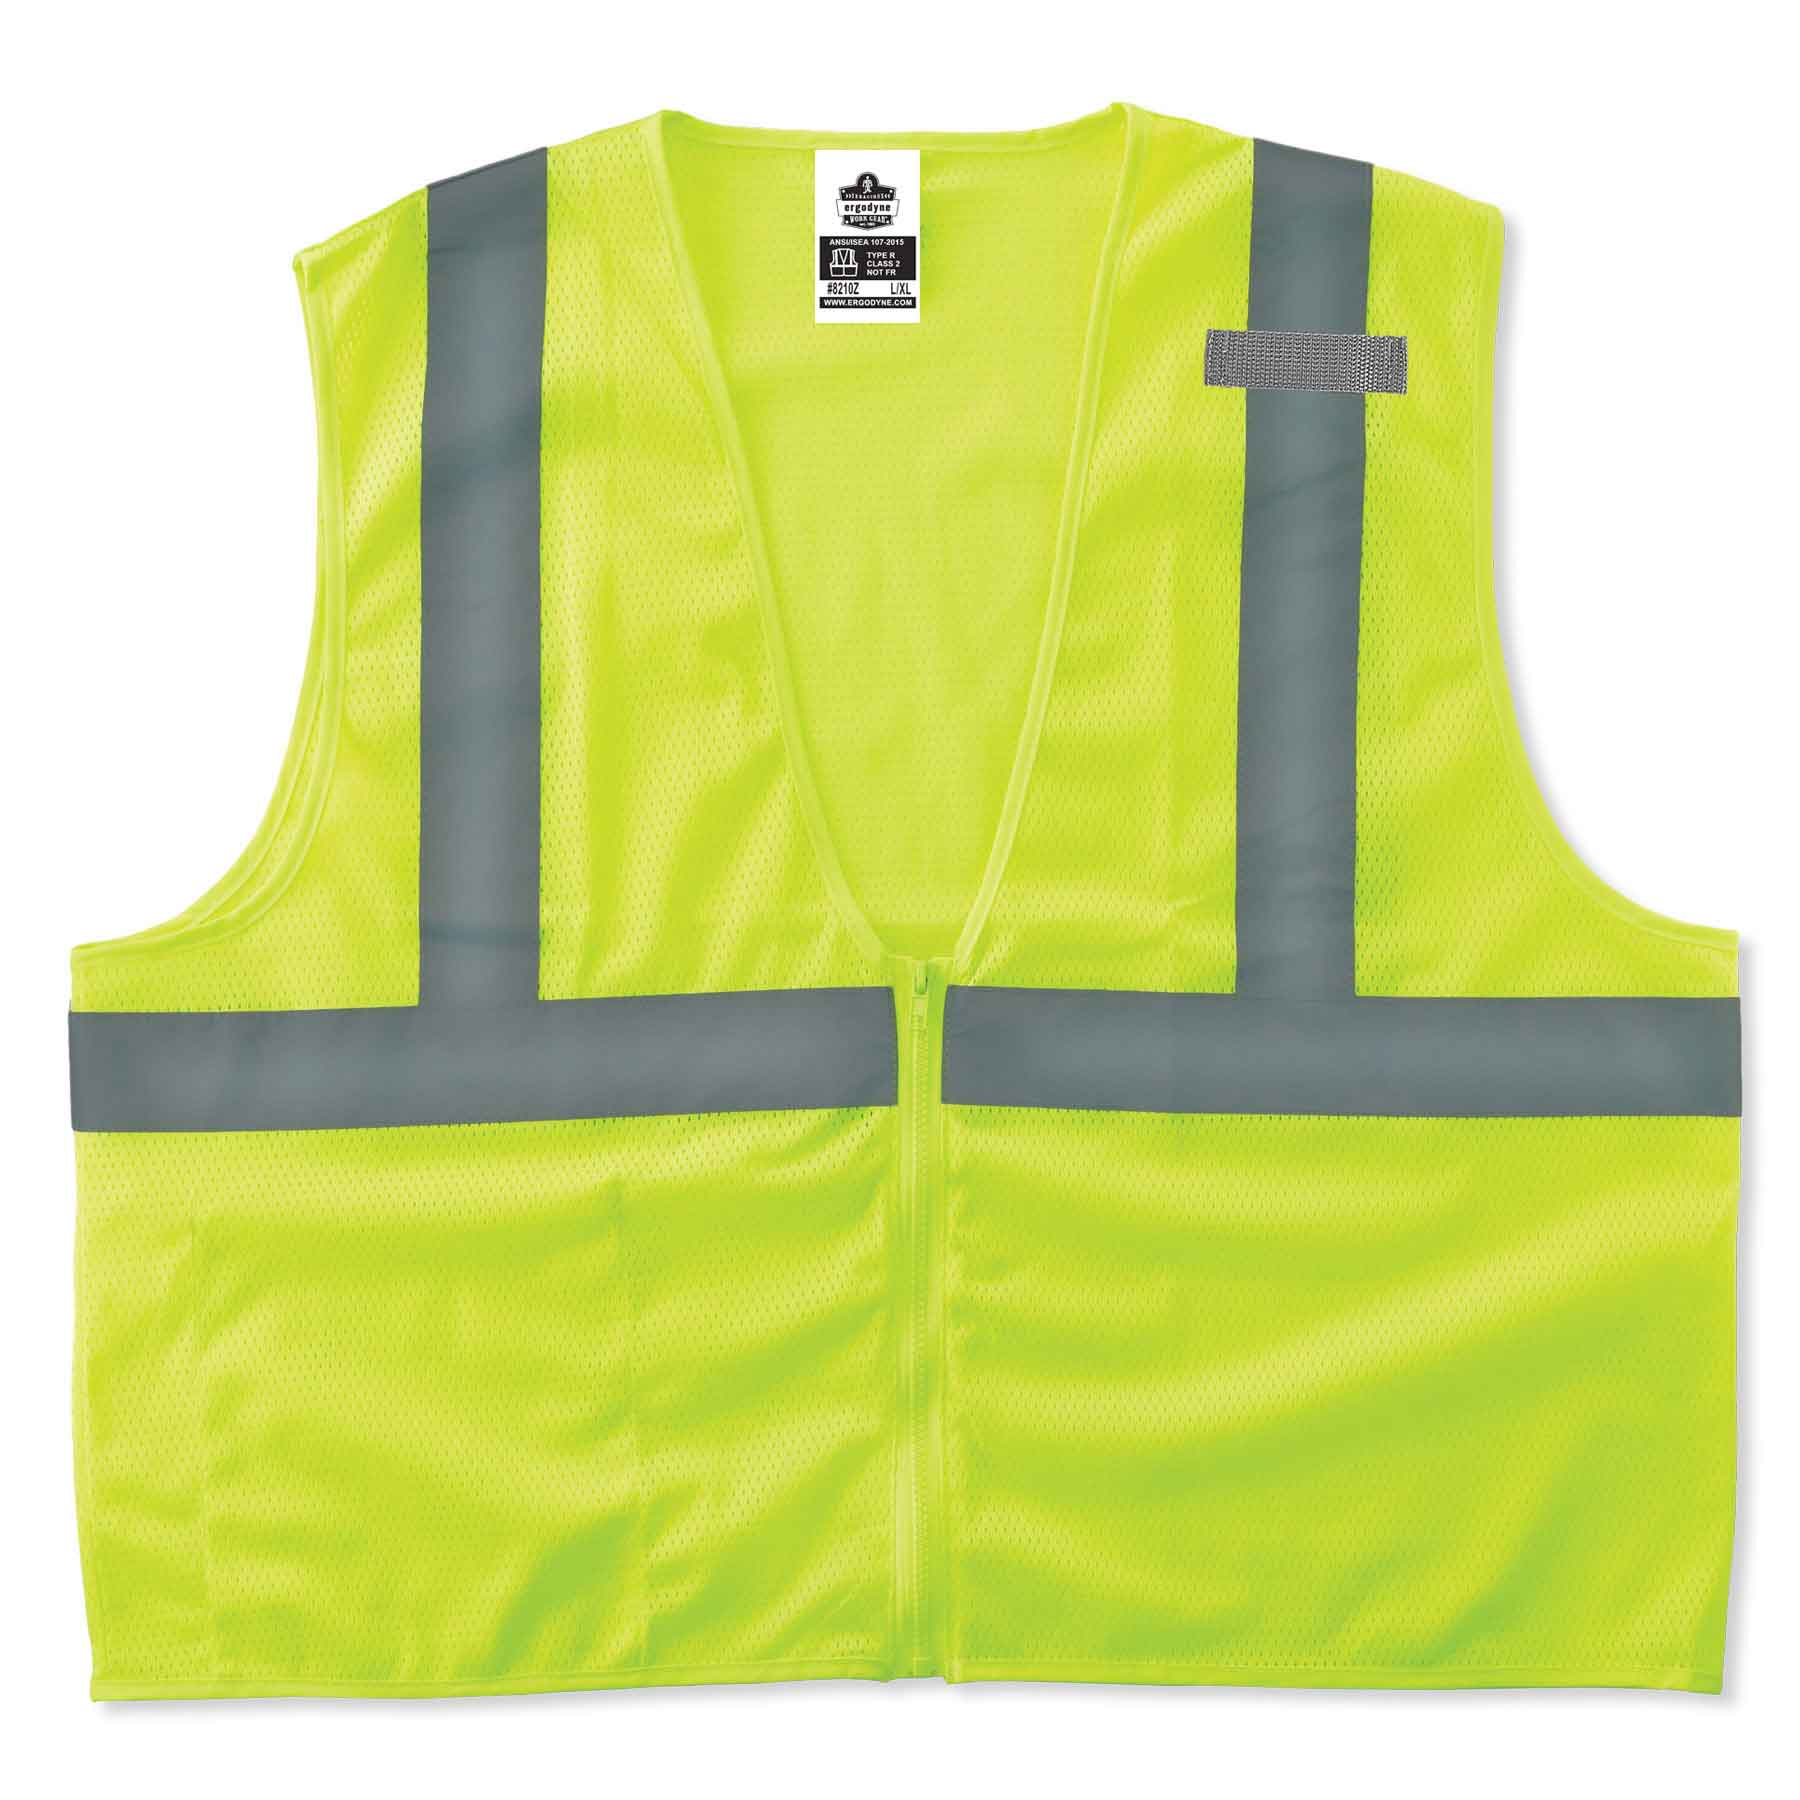 Ergodyne, GloWear 8210Z ANSI Economy High Visibility Lime Reflective Safety Vest, Zipper Closure, Large/X-Large